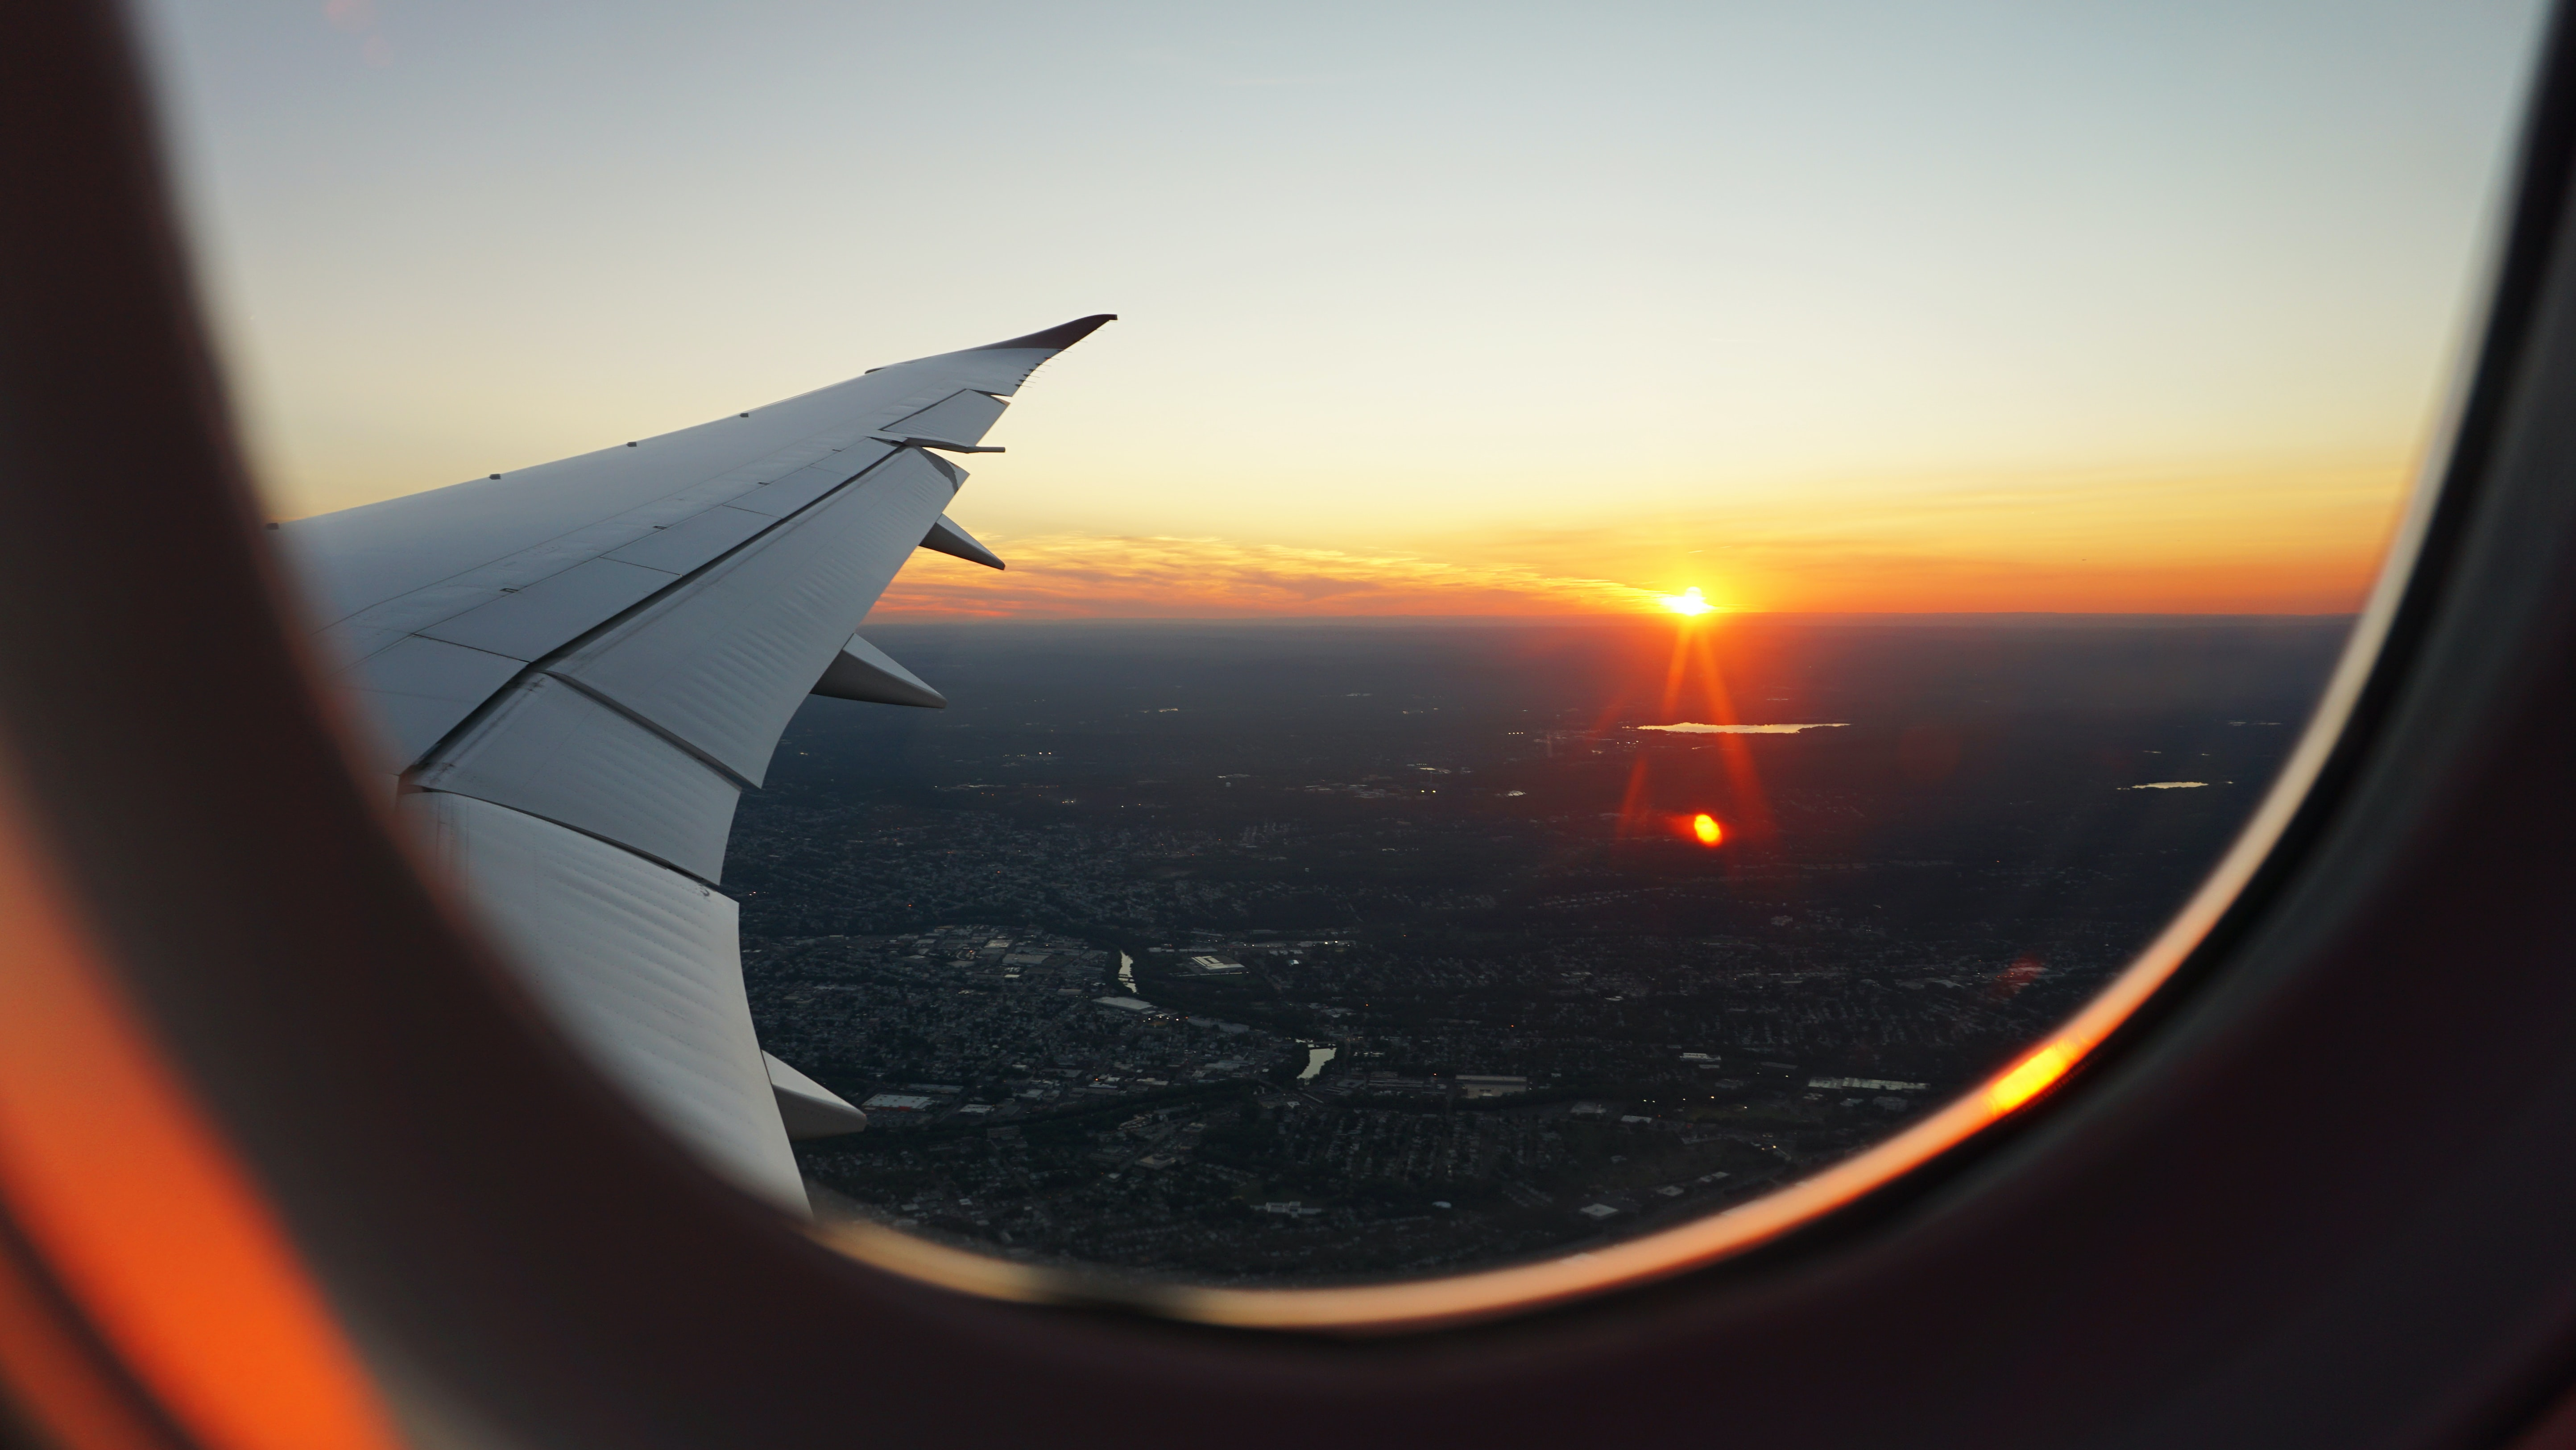 A view from an airplane window on the sun setting on the horizon